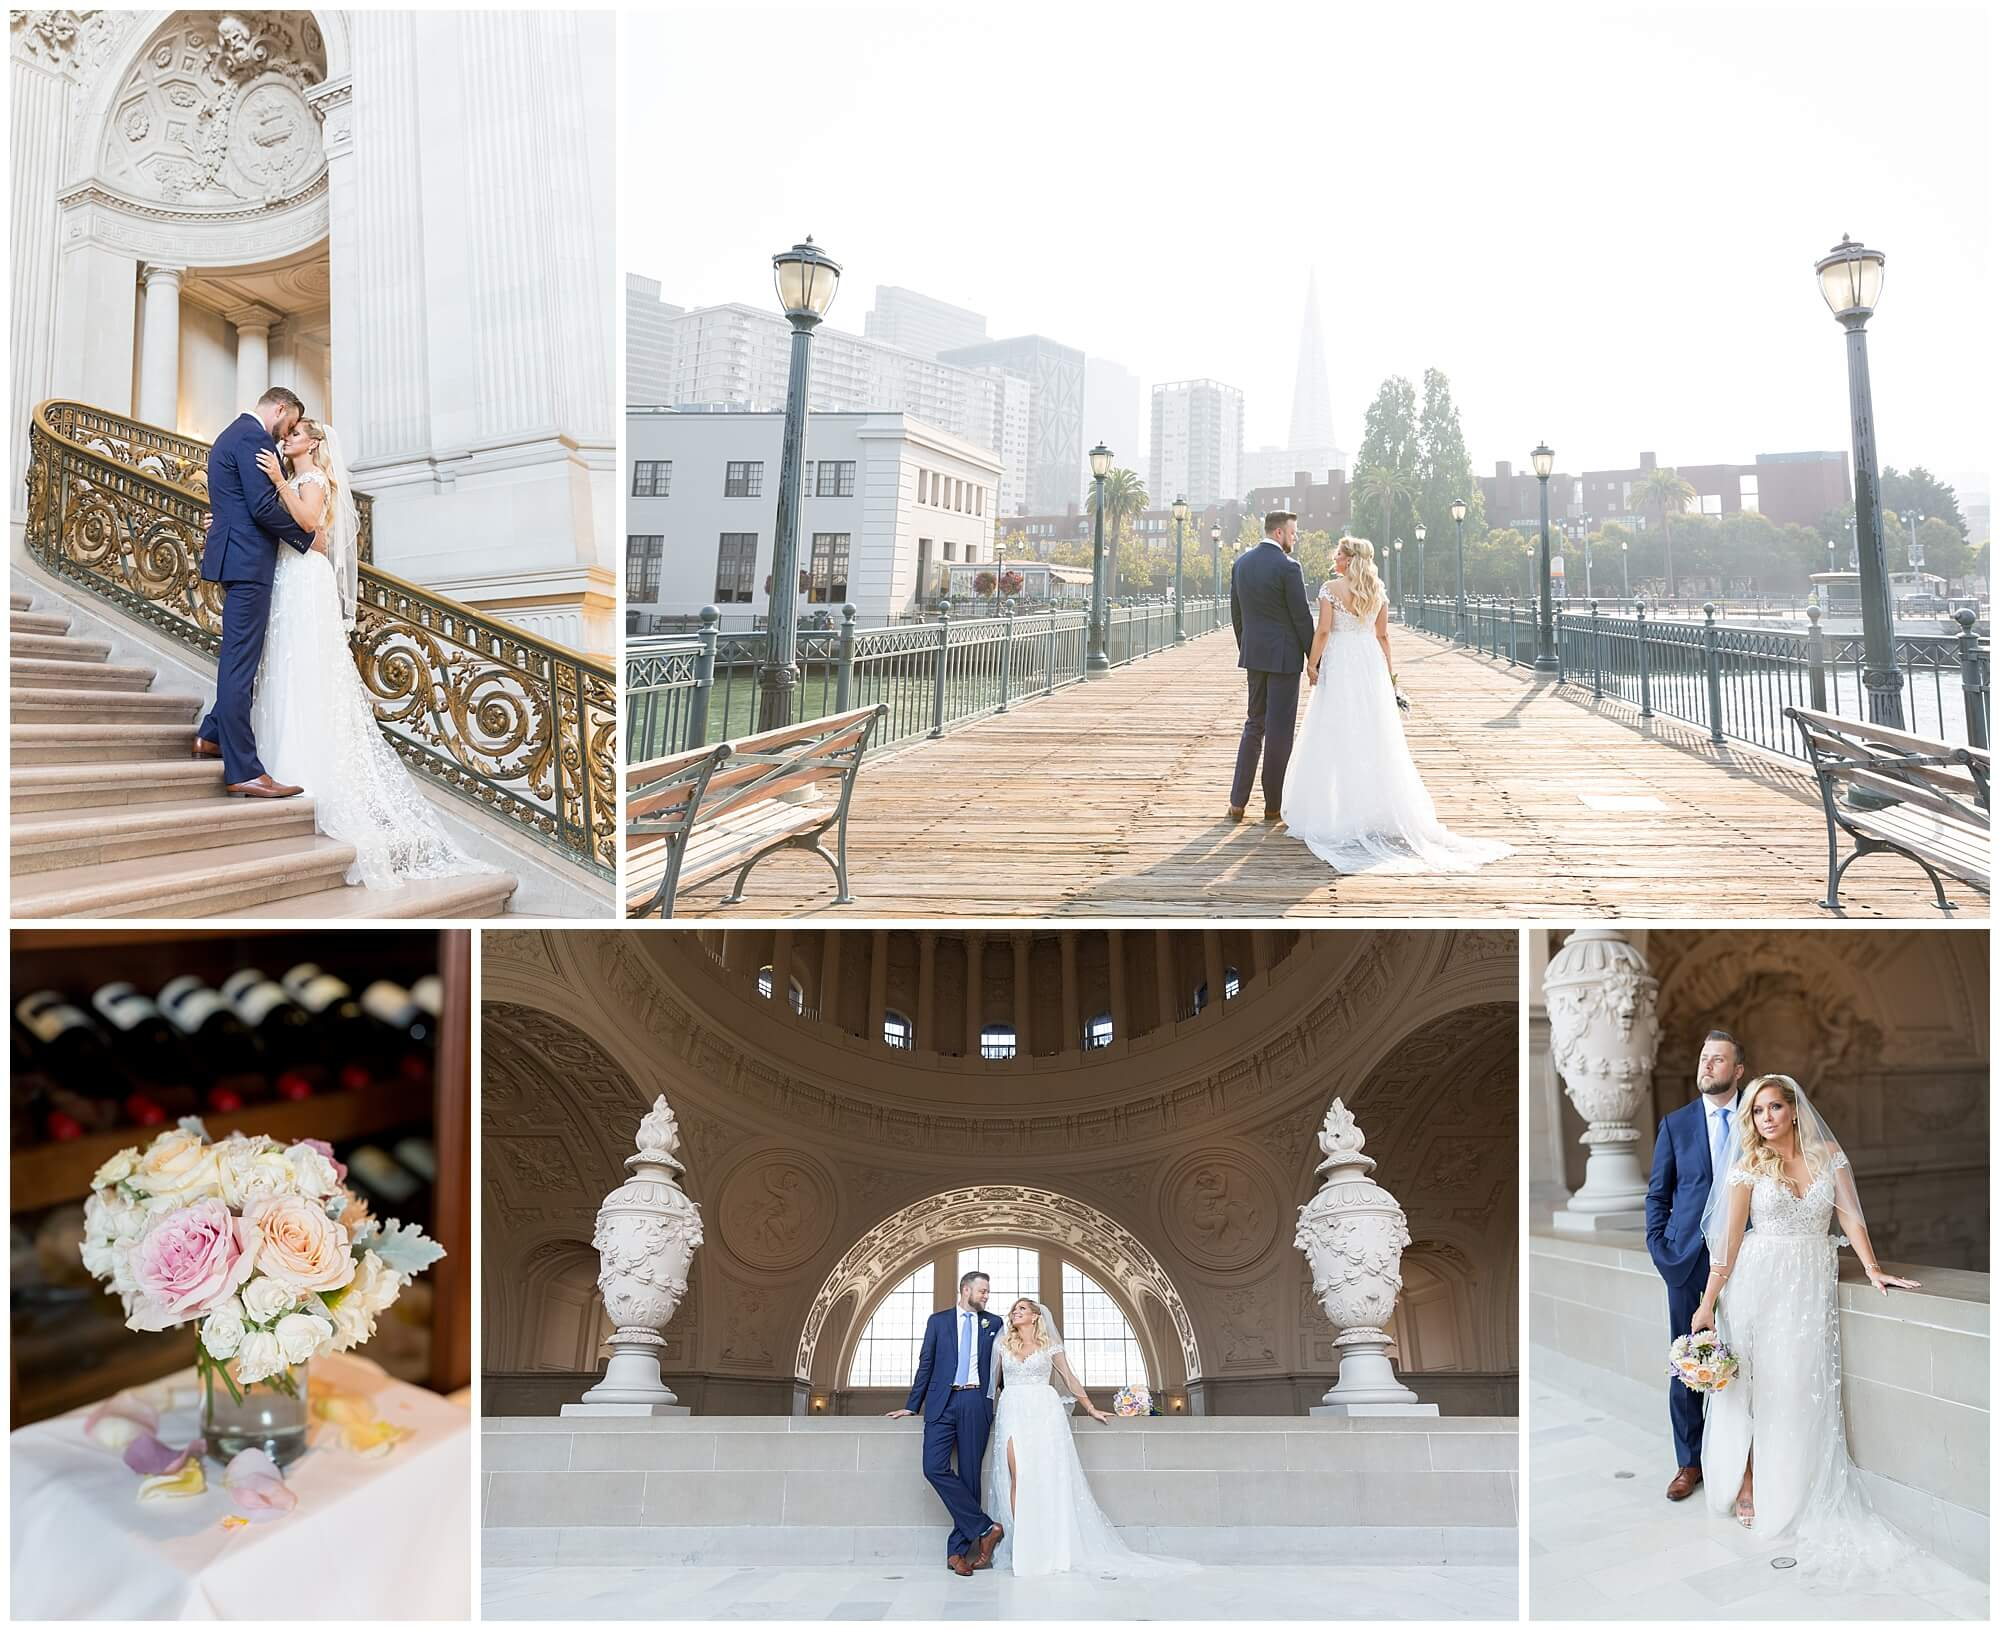 Robyn and Hugh's San Francisco City Hall wedding photos by Red Eye Collection